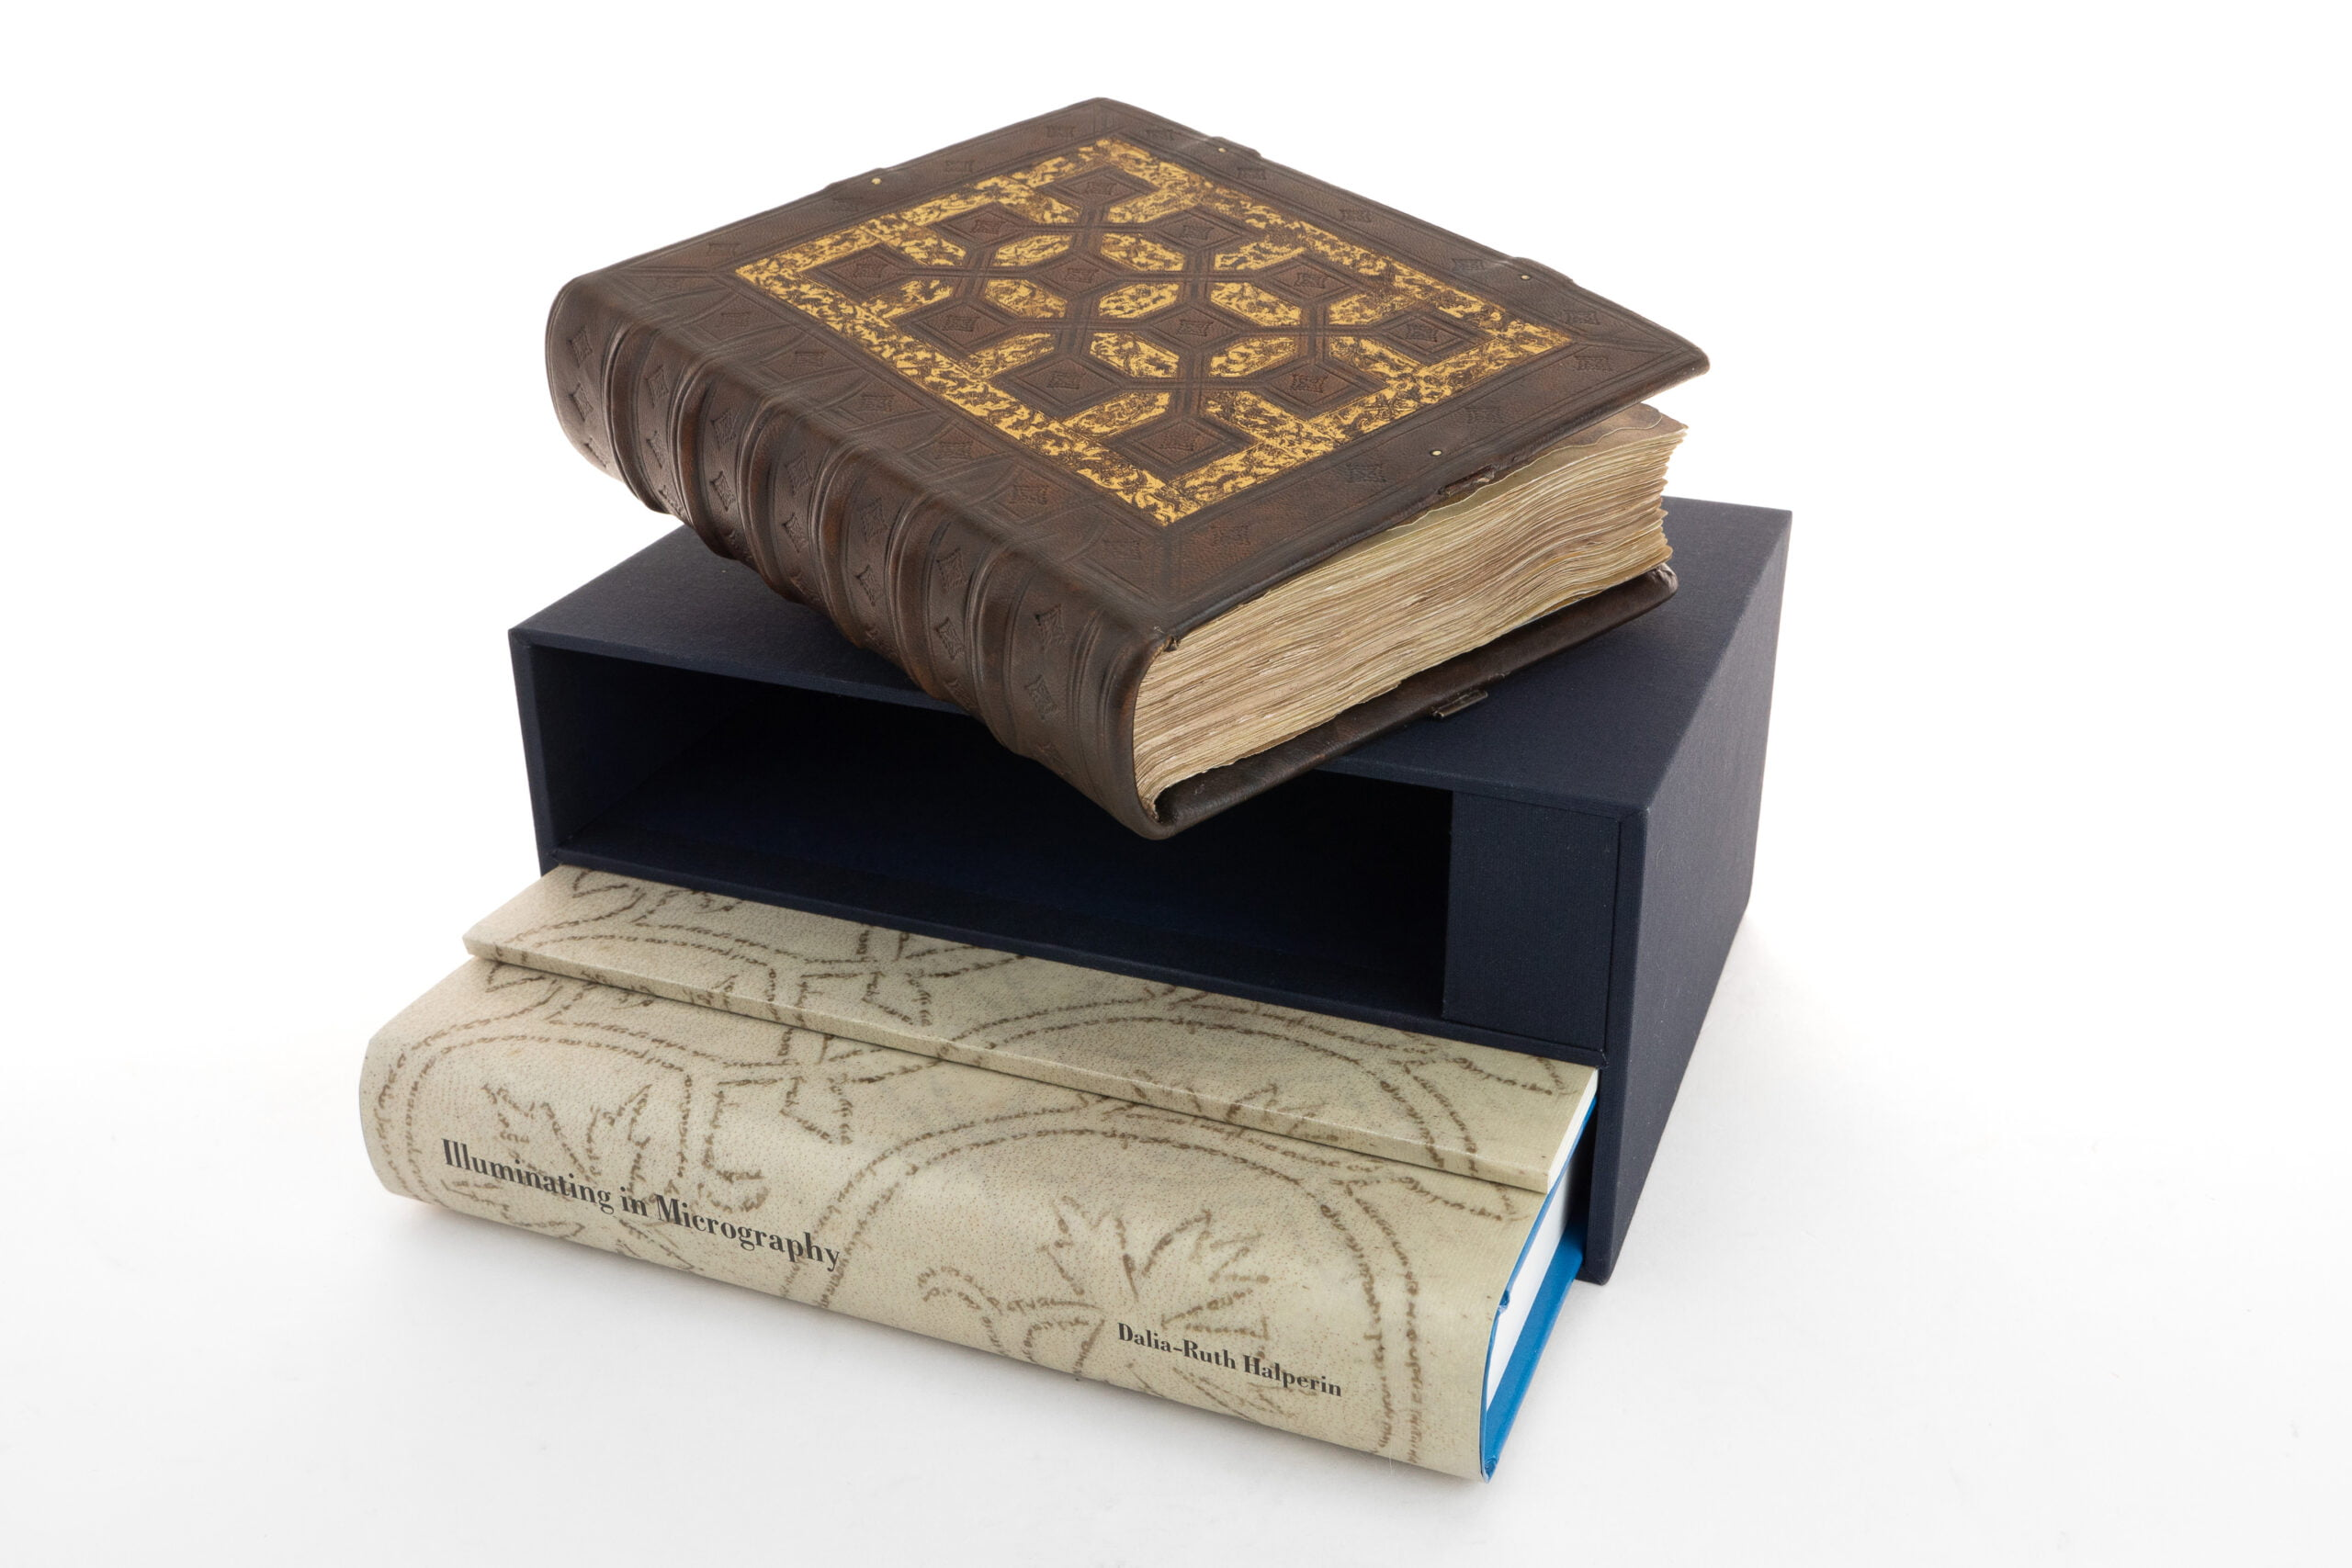 """The Catalan Mahzor facsimile, commentary volume, explanatory booklet describing the manuscript's acquisition and slipcase. <small><a href=""""https://www.facsimile-editions.com/copyright/"""">© Copyright 2021 Facsimile Editions Ltd</a></small>"""